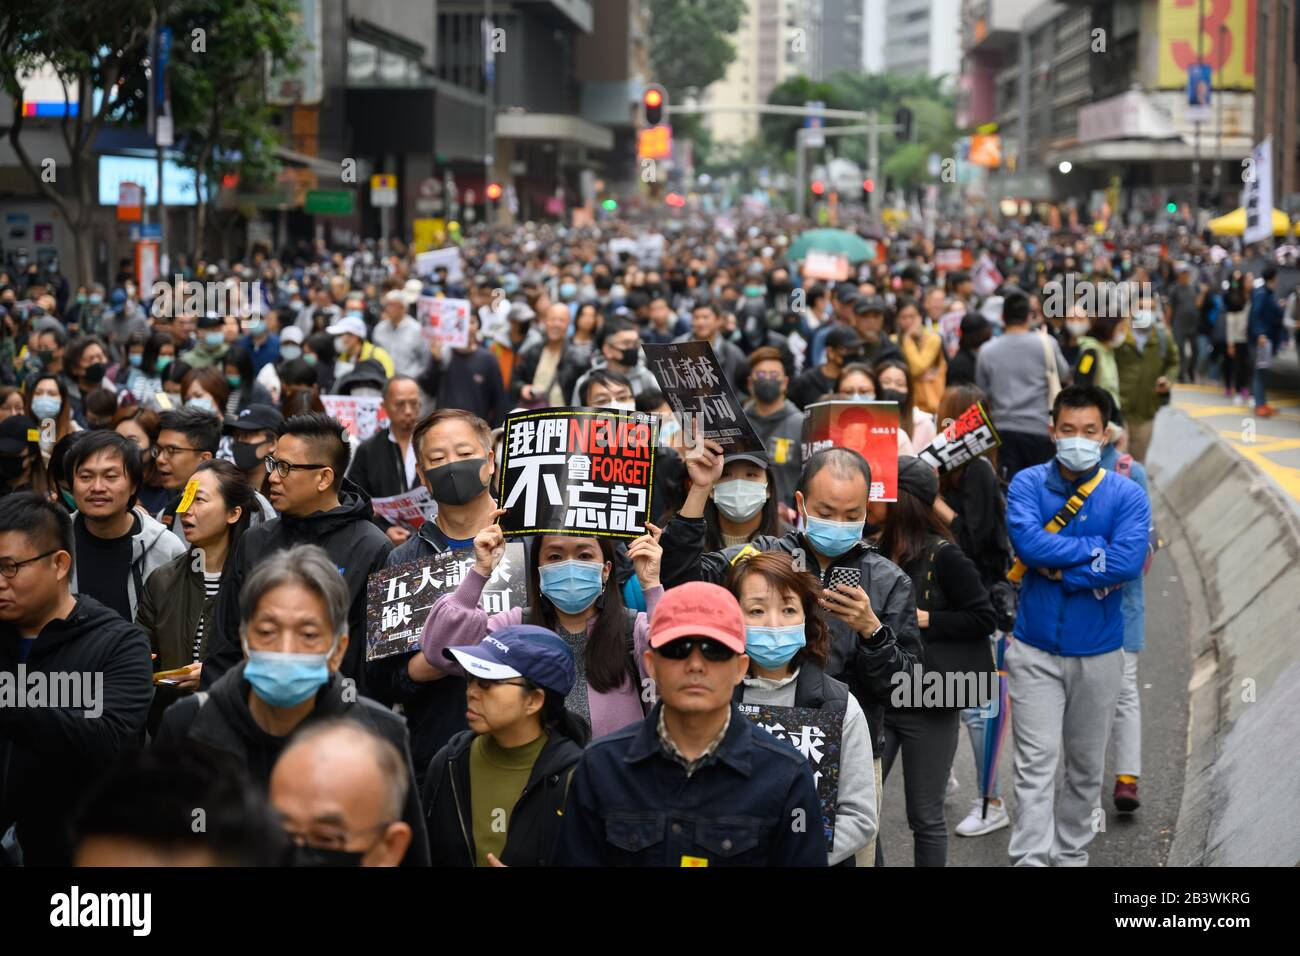 Hong Kong - Jan 1, 2020: A million attend demo, demand for universal suffrage, 2020 direct democratic elections for Legislative Council without functi Stock Photo